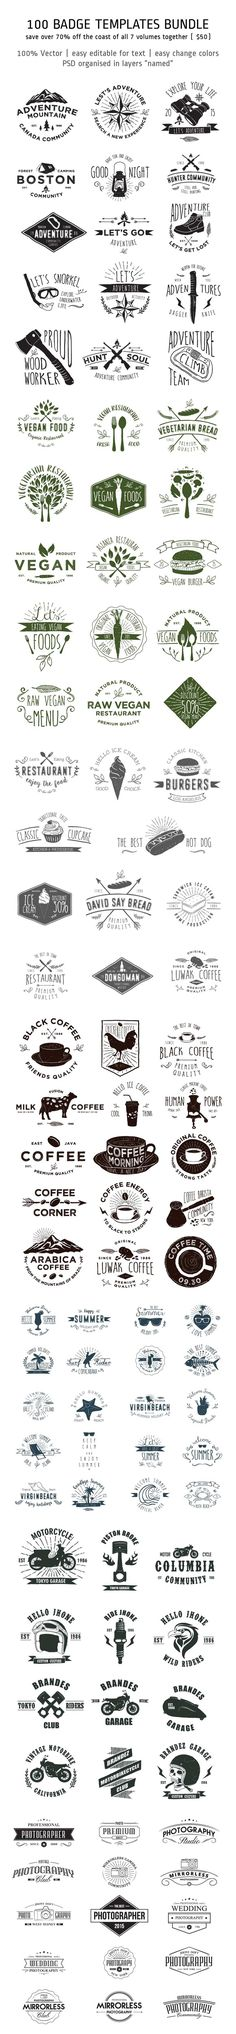 100 Badge Templates Bundle by alit_design on Creative Market